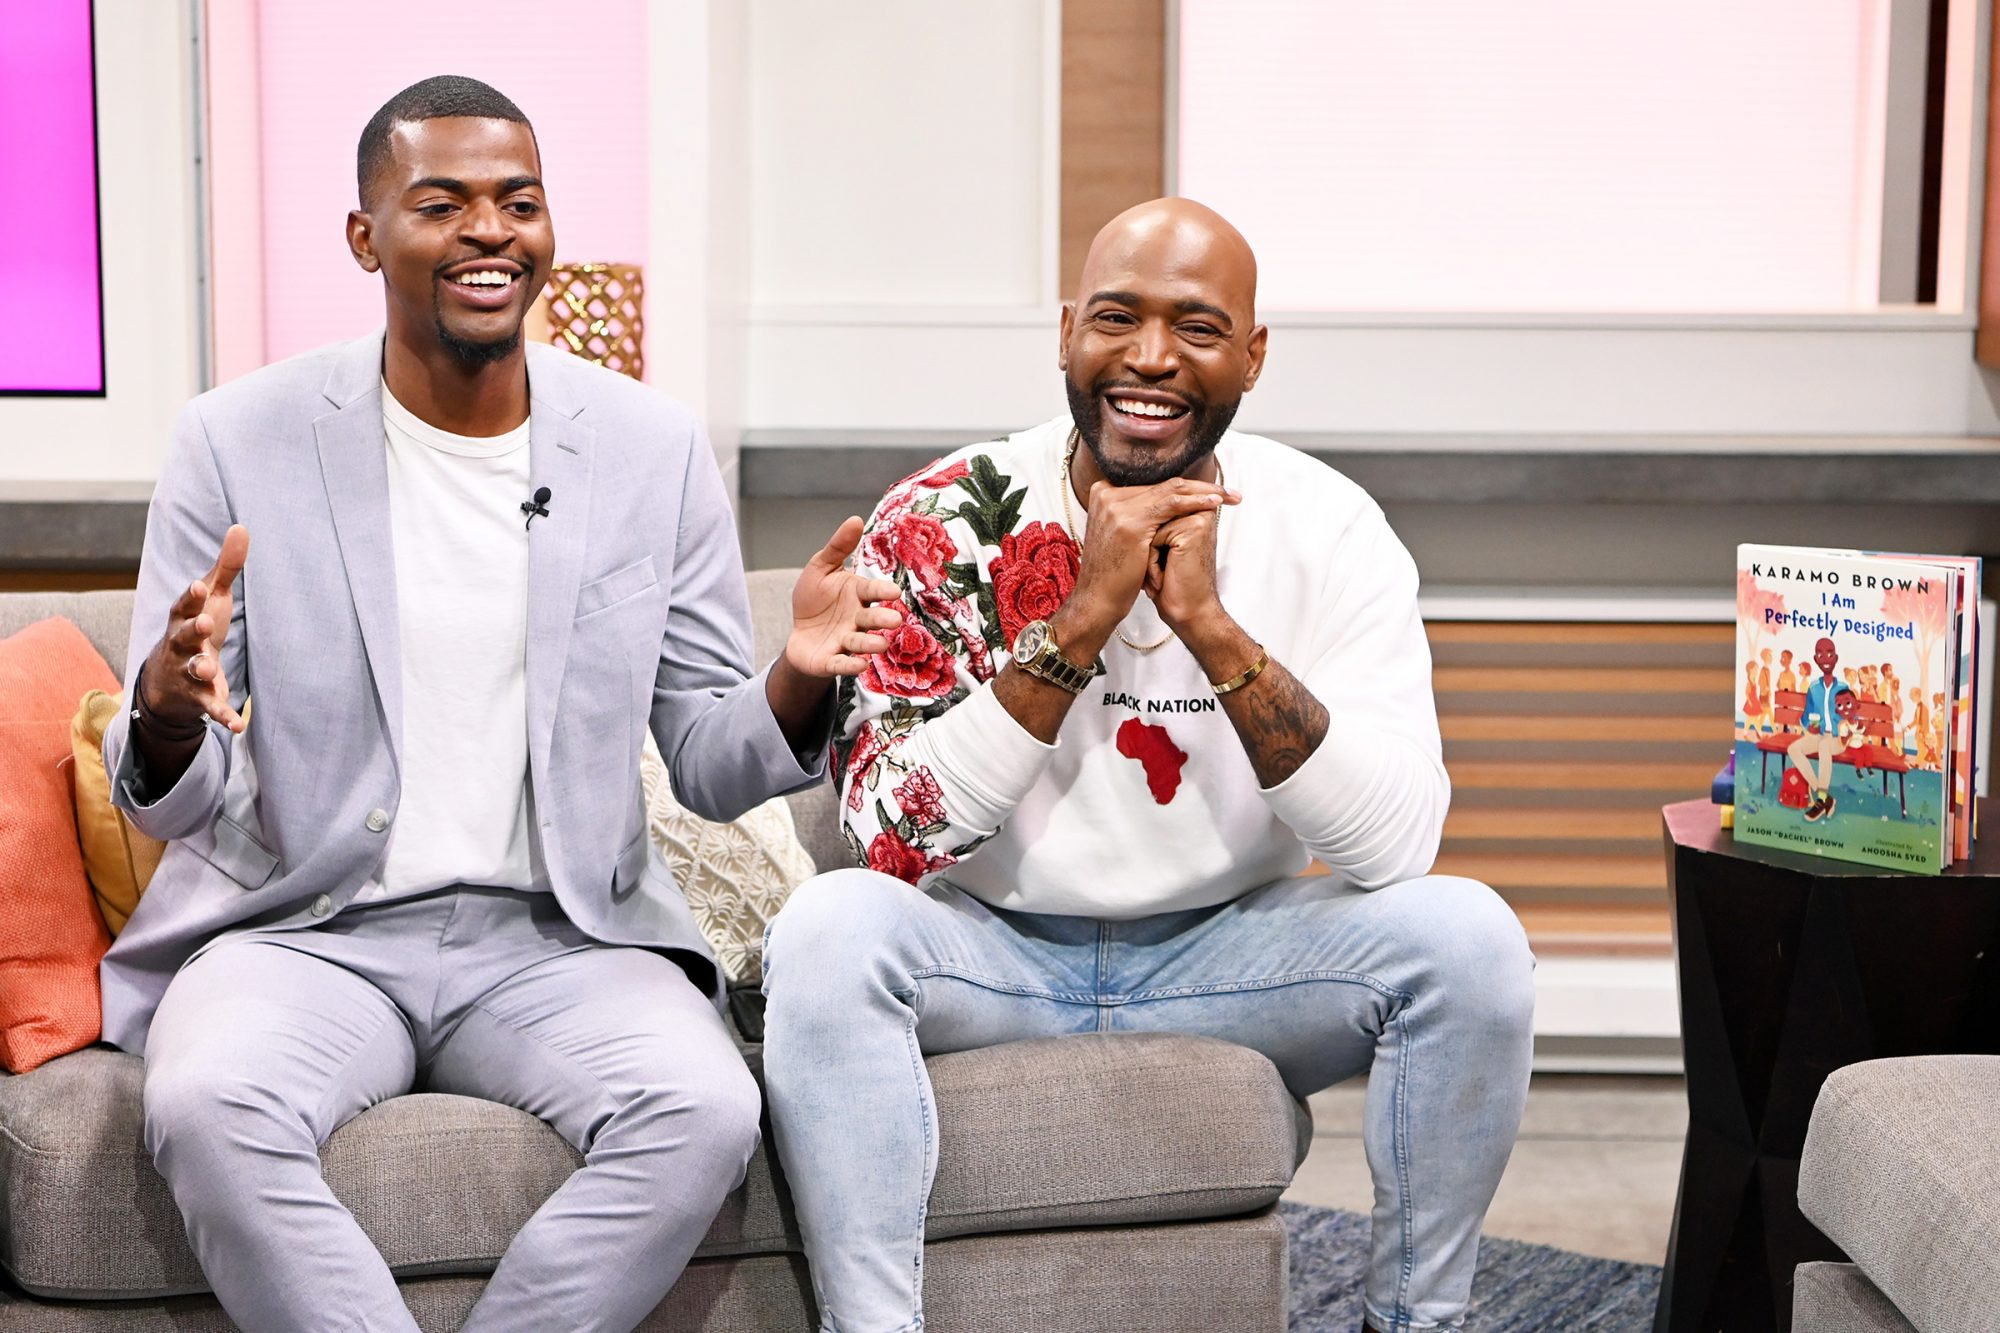 """Karamo Brown (R) and son Jason Brown visit PeopleNow to promote their new book """"I am Perfectly Designed"""" at PeopleTV Studios on November 06, 2019 in New York"""